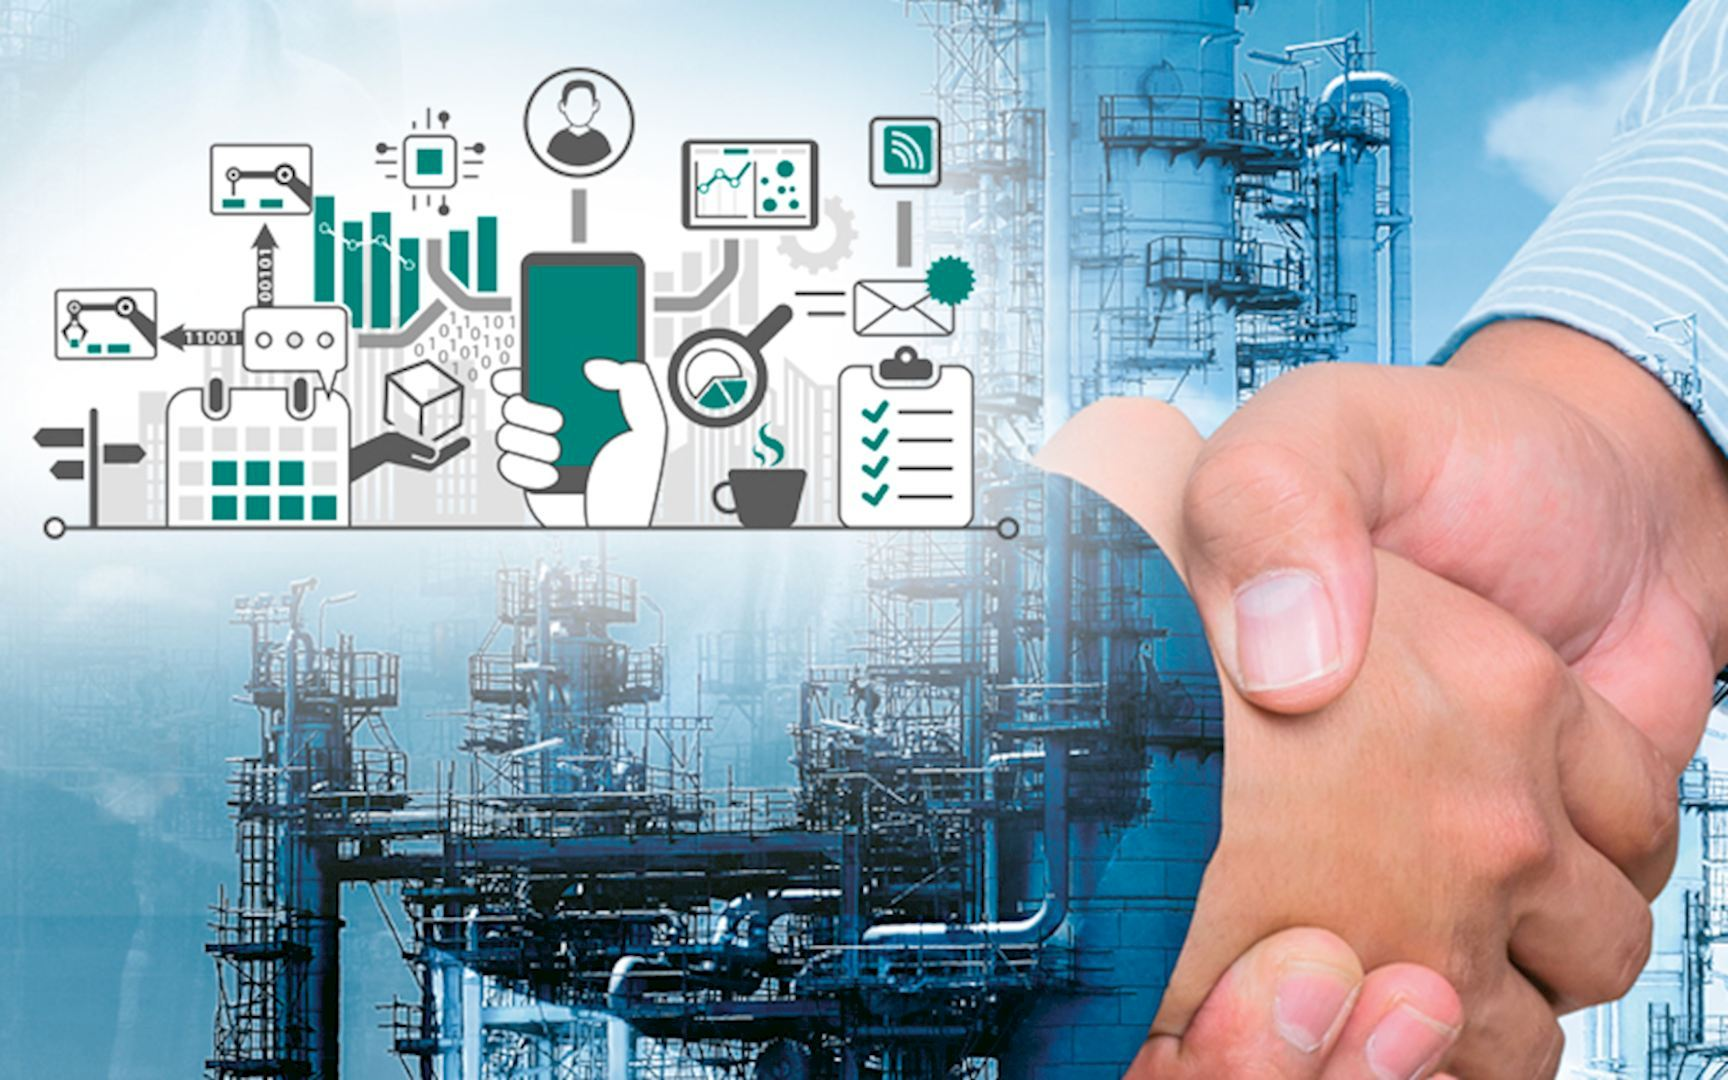 Ensemble vers l'Industry 4.0